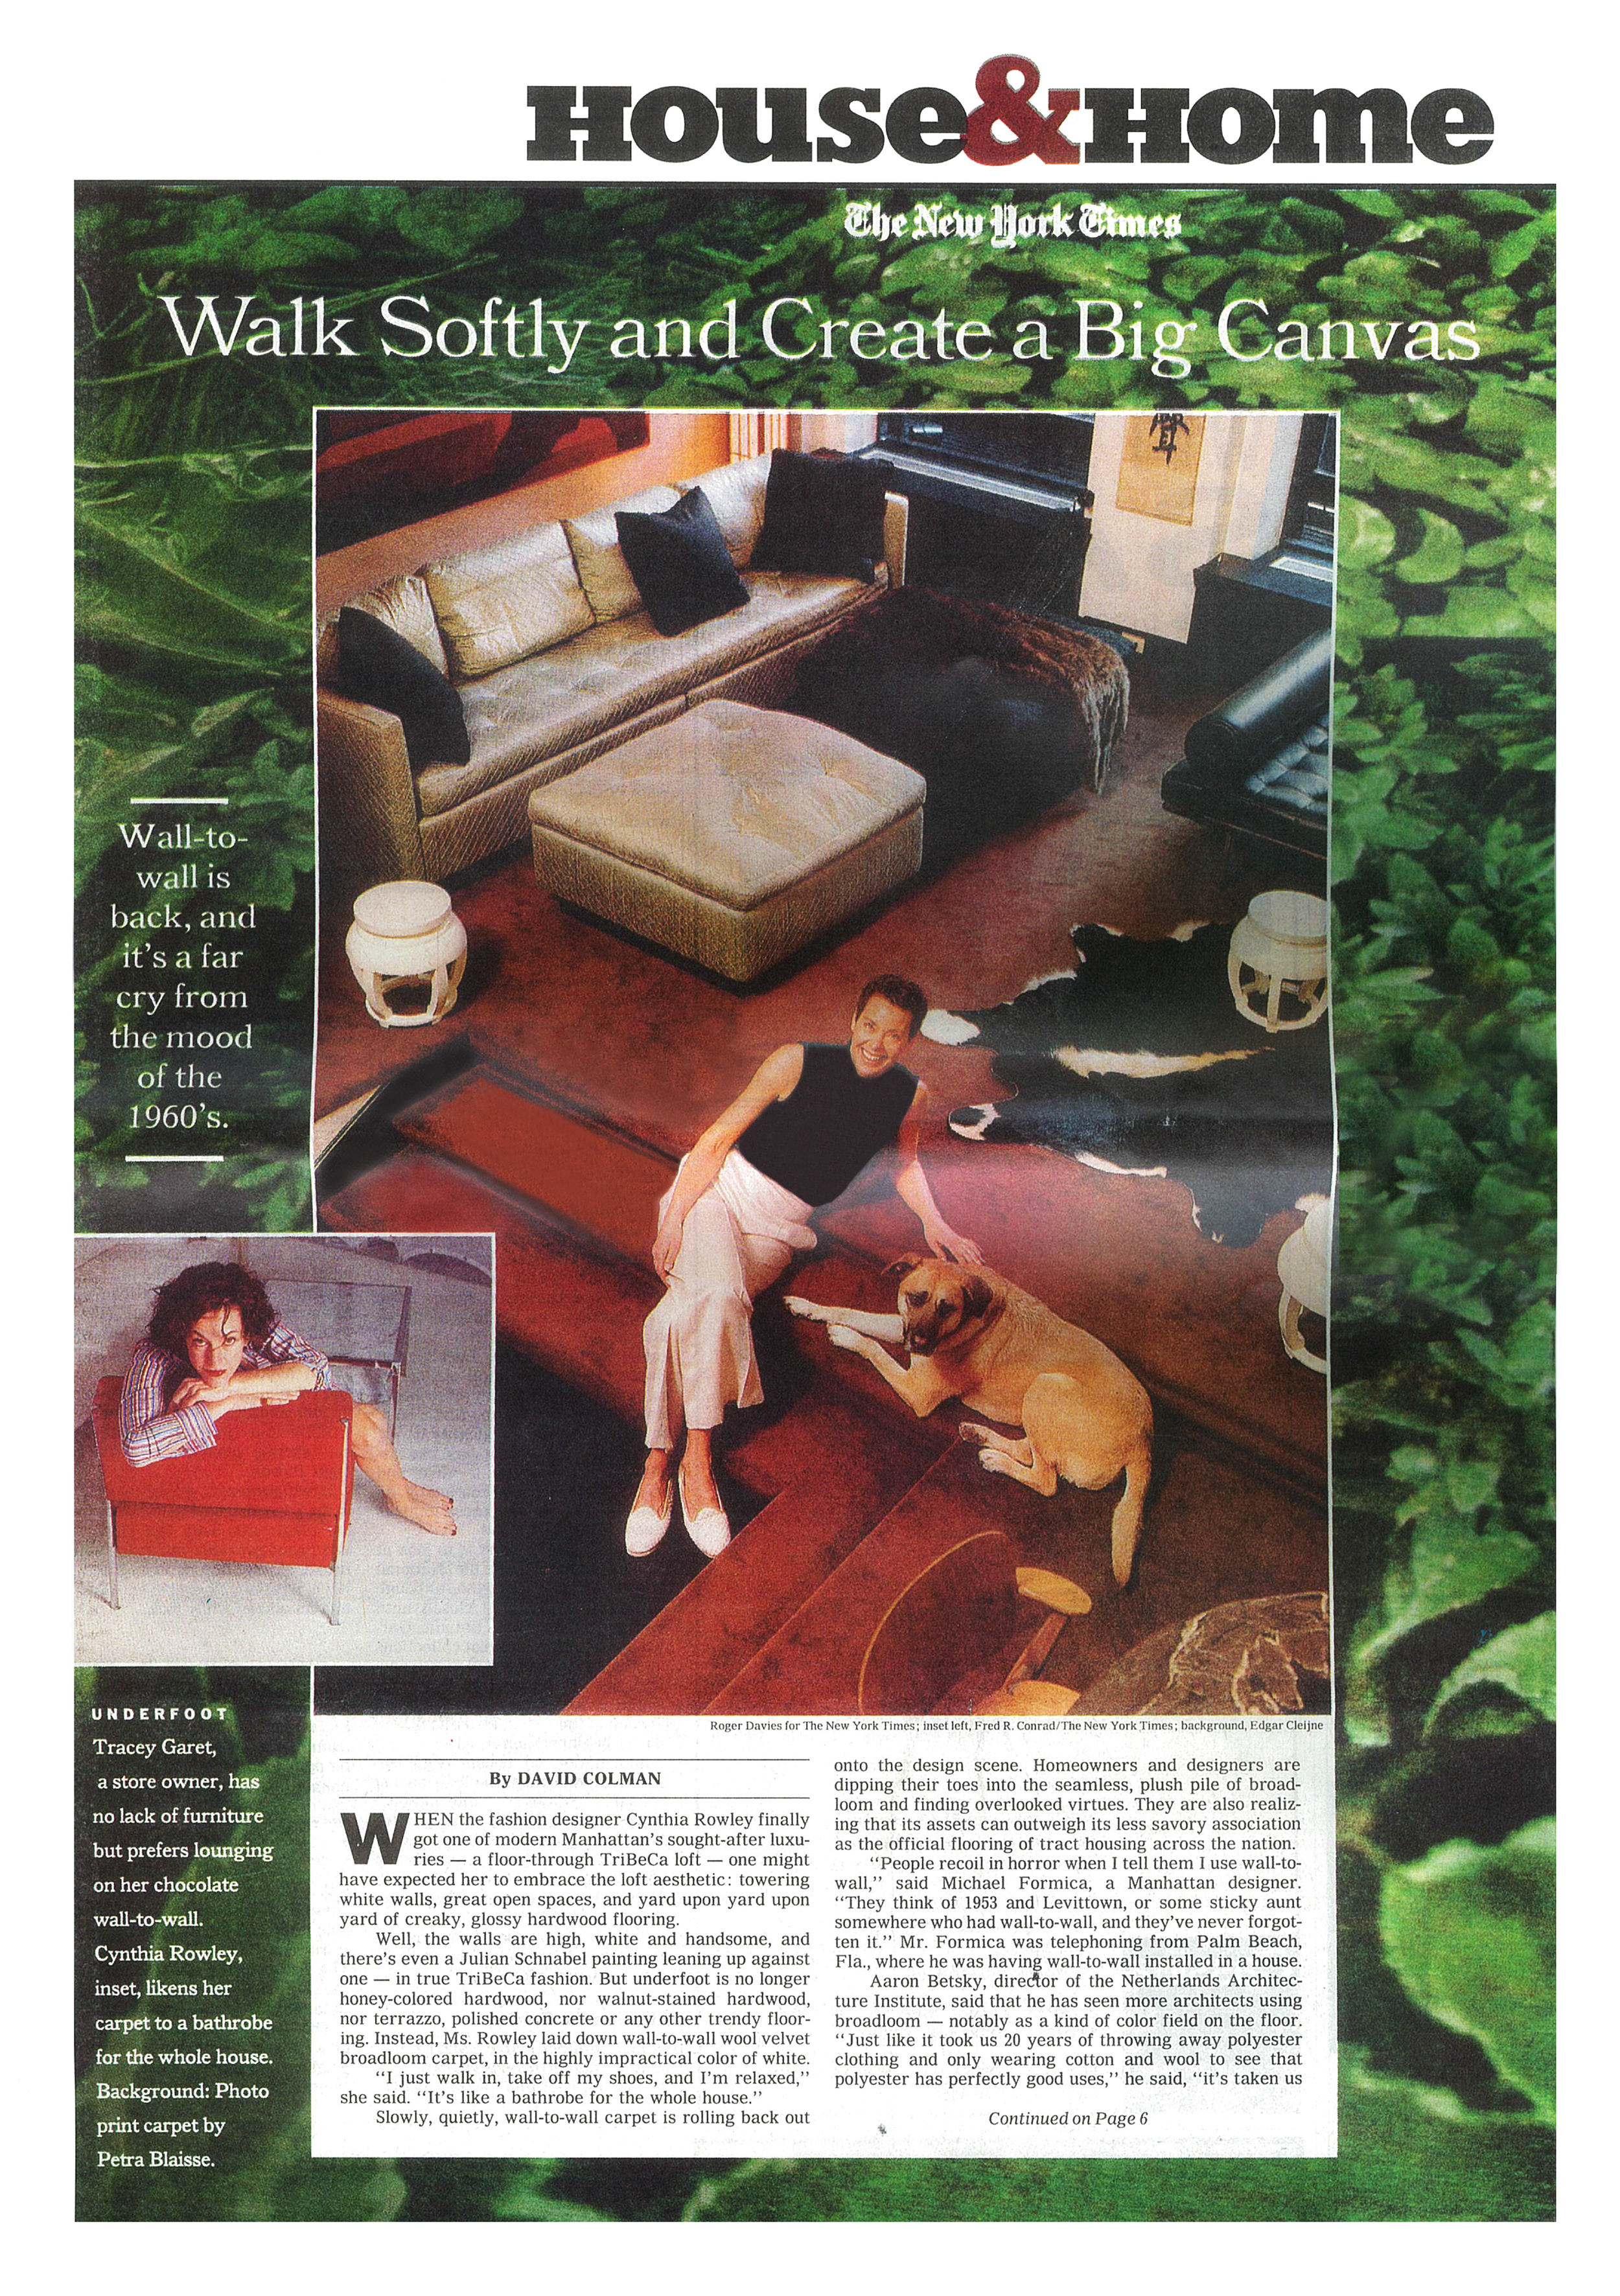 tracey_garet_house_and_home_nyt_1.jpg